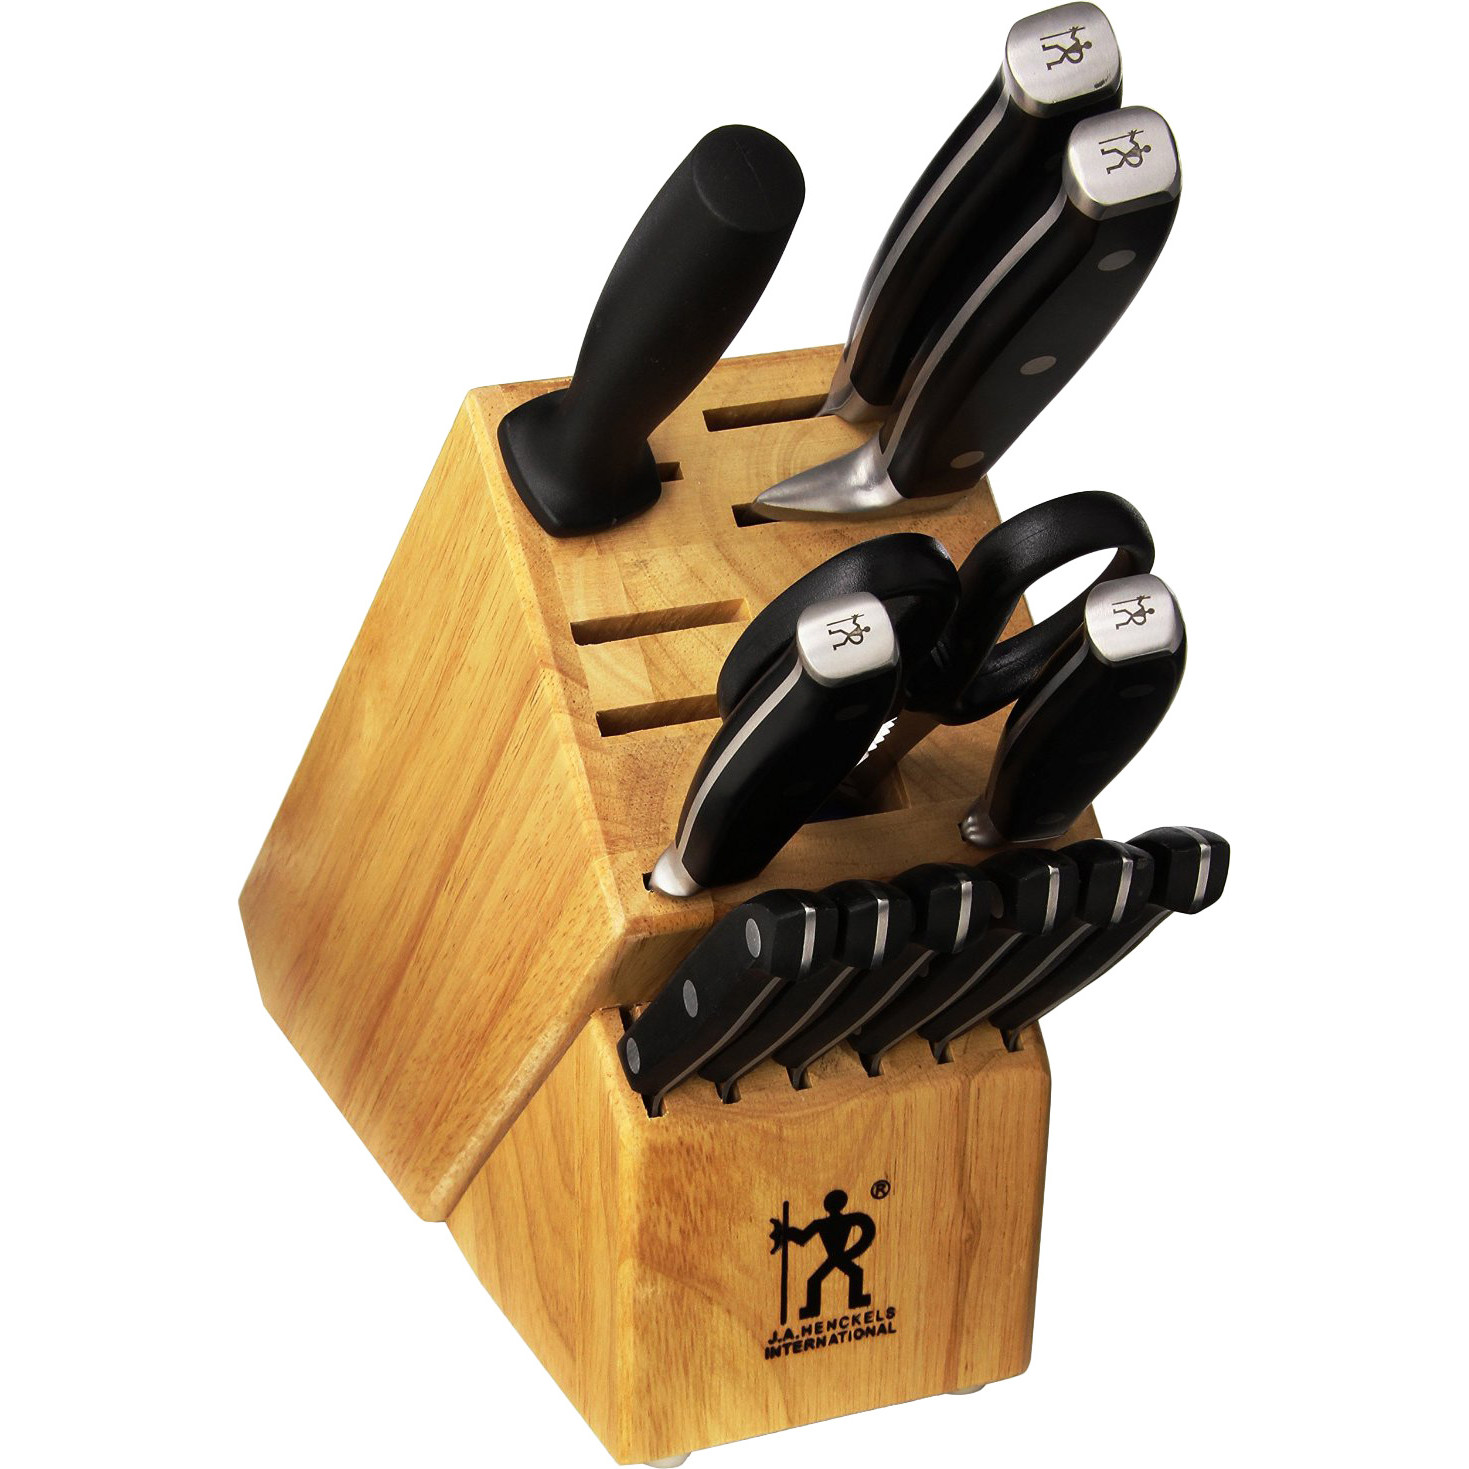 Outstanding hampton forge knife set for kitchen with hampton forge cutlery set